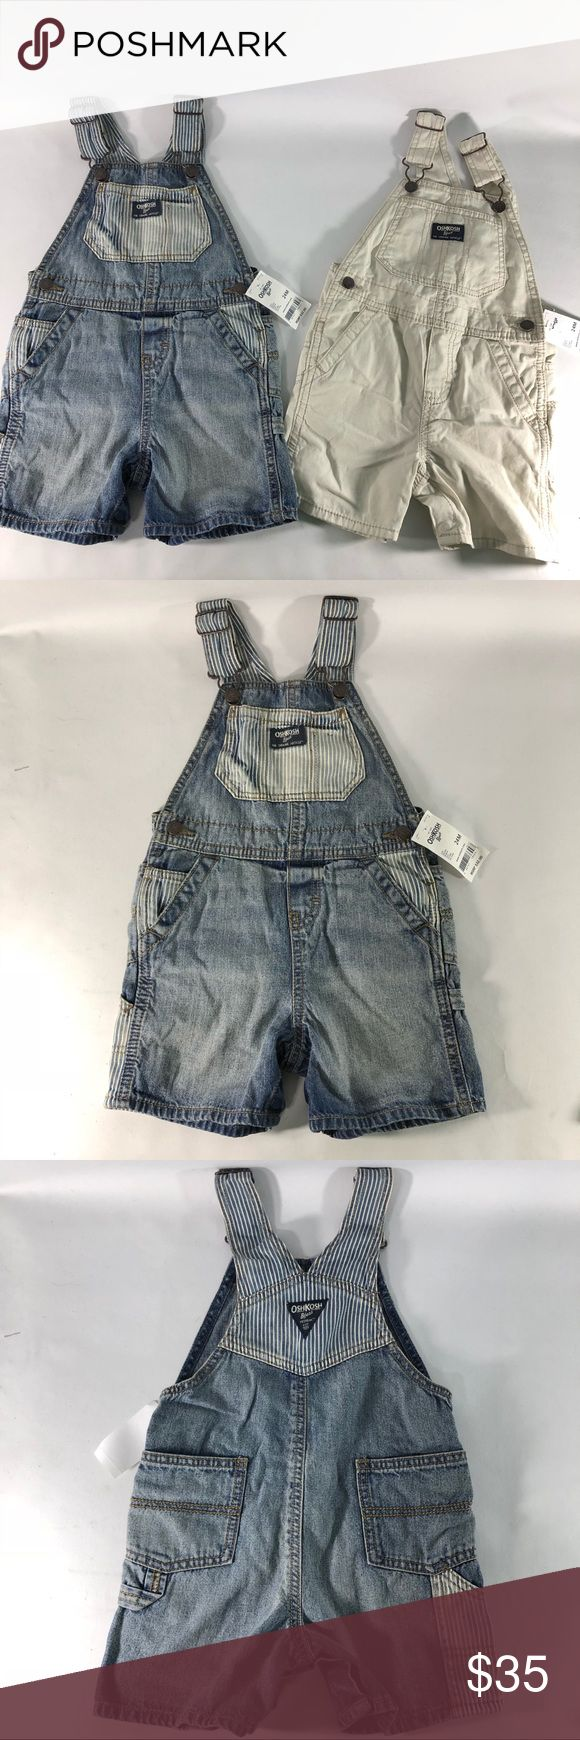 Boys Oshkosh Bib Overall Shorts Details: Brand: Oshkosh  Tag size 24 Months  -denim blue and white stripped. -white denim.   Inventory number: j13 OshKosh B'gosh Bottoms Overalls